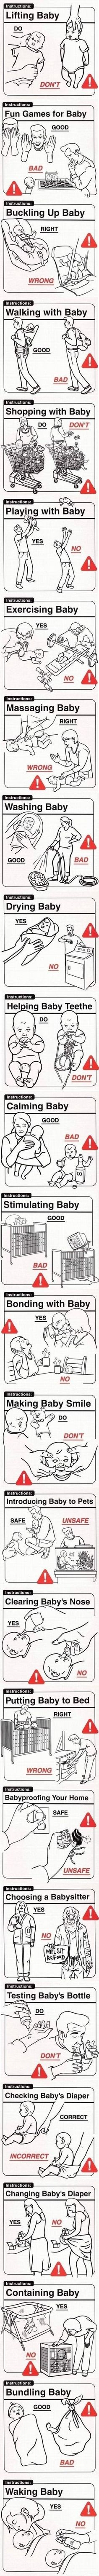 Baby Manual For New Parents!  Only  joking!  Remember, we've got to keep our sense of humour ladies!